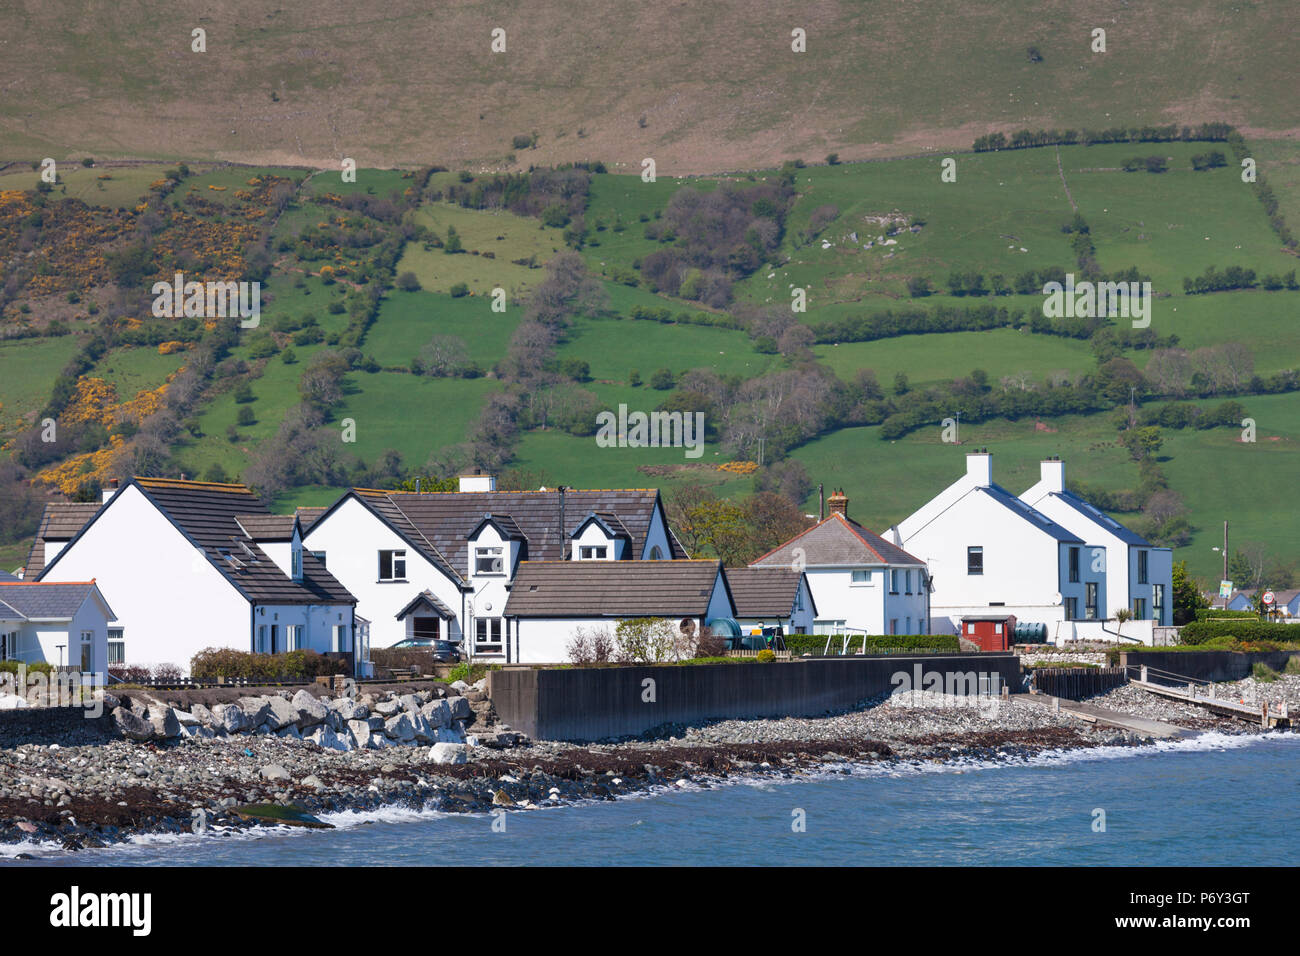 UK, Northern Ireland, County Antrim, Glenariff, view of the ladder farms - Stock Image